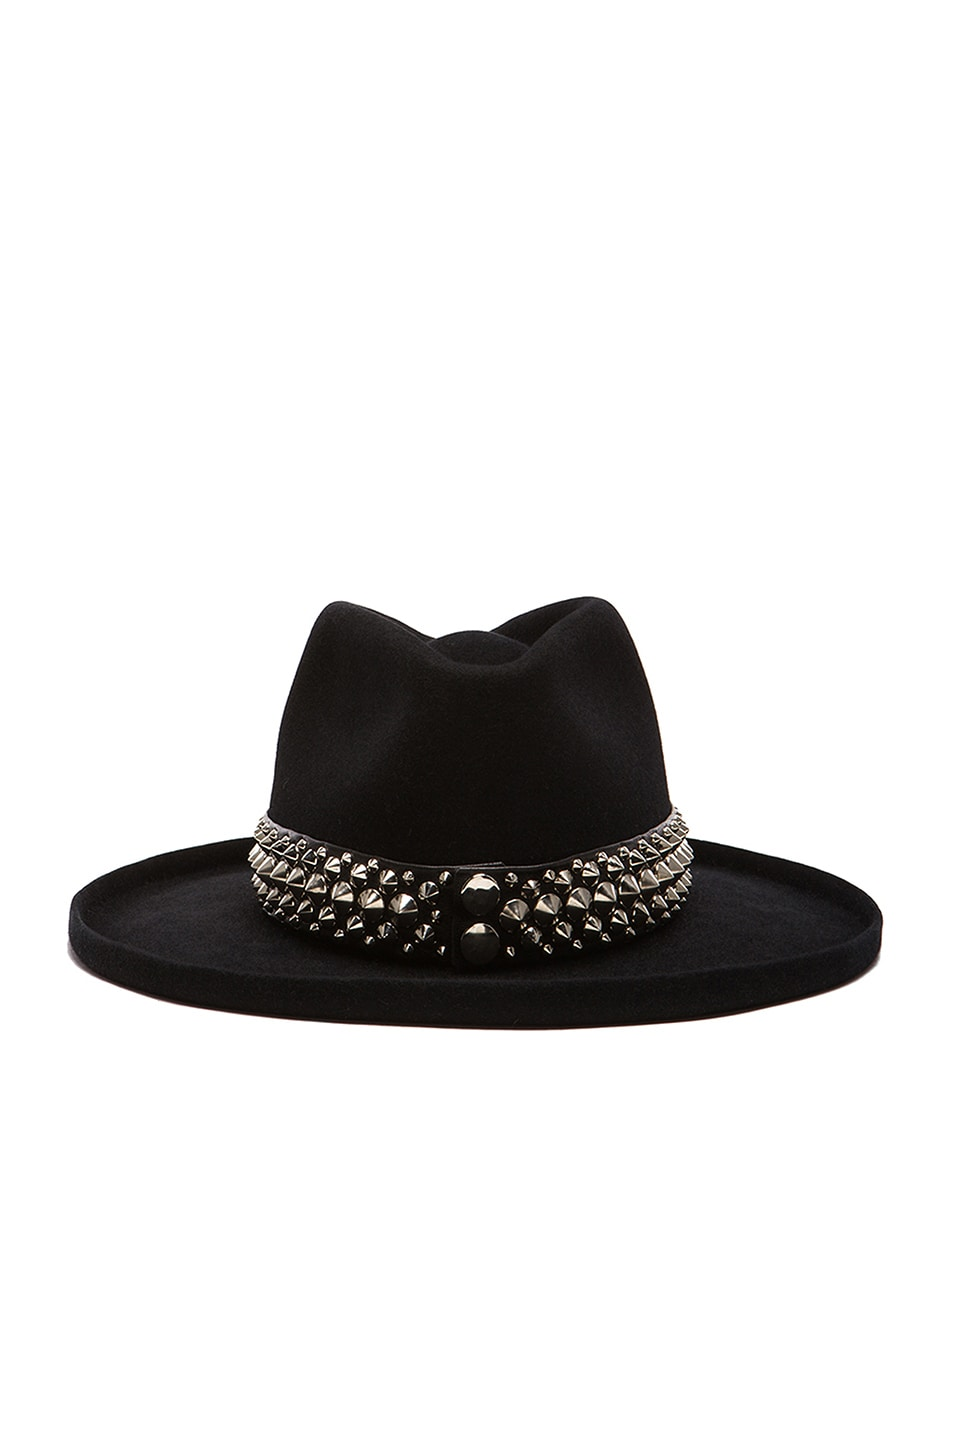 Image 4 of Gladys Tamez Millinery The Johnny Hat with Studded Band in Black